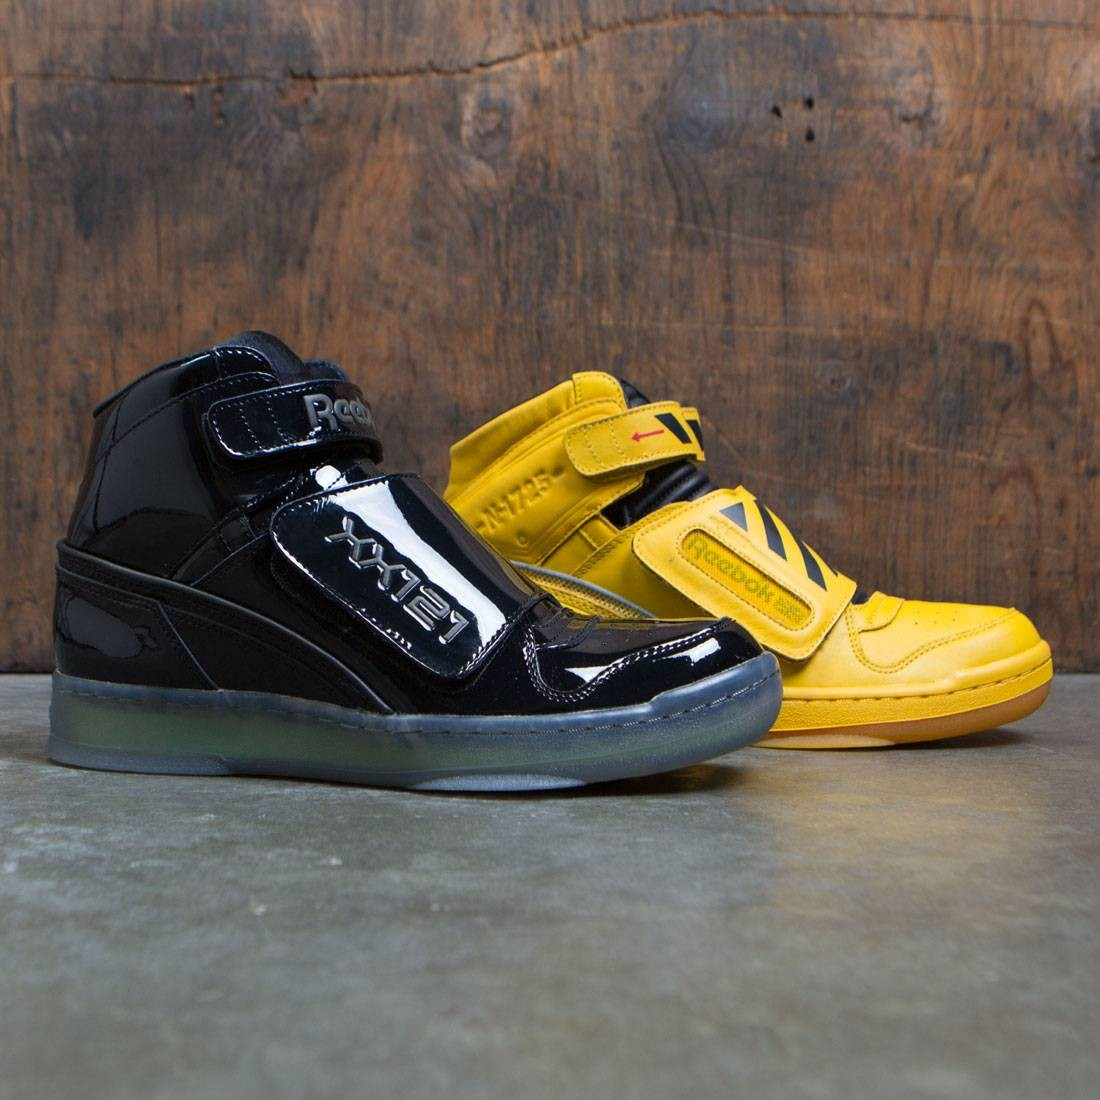 Reebok Men Alien Stomper Mid PL - Final Battle Pack (yellow   retro   black  gum) 17b8762b3